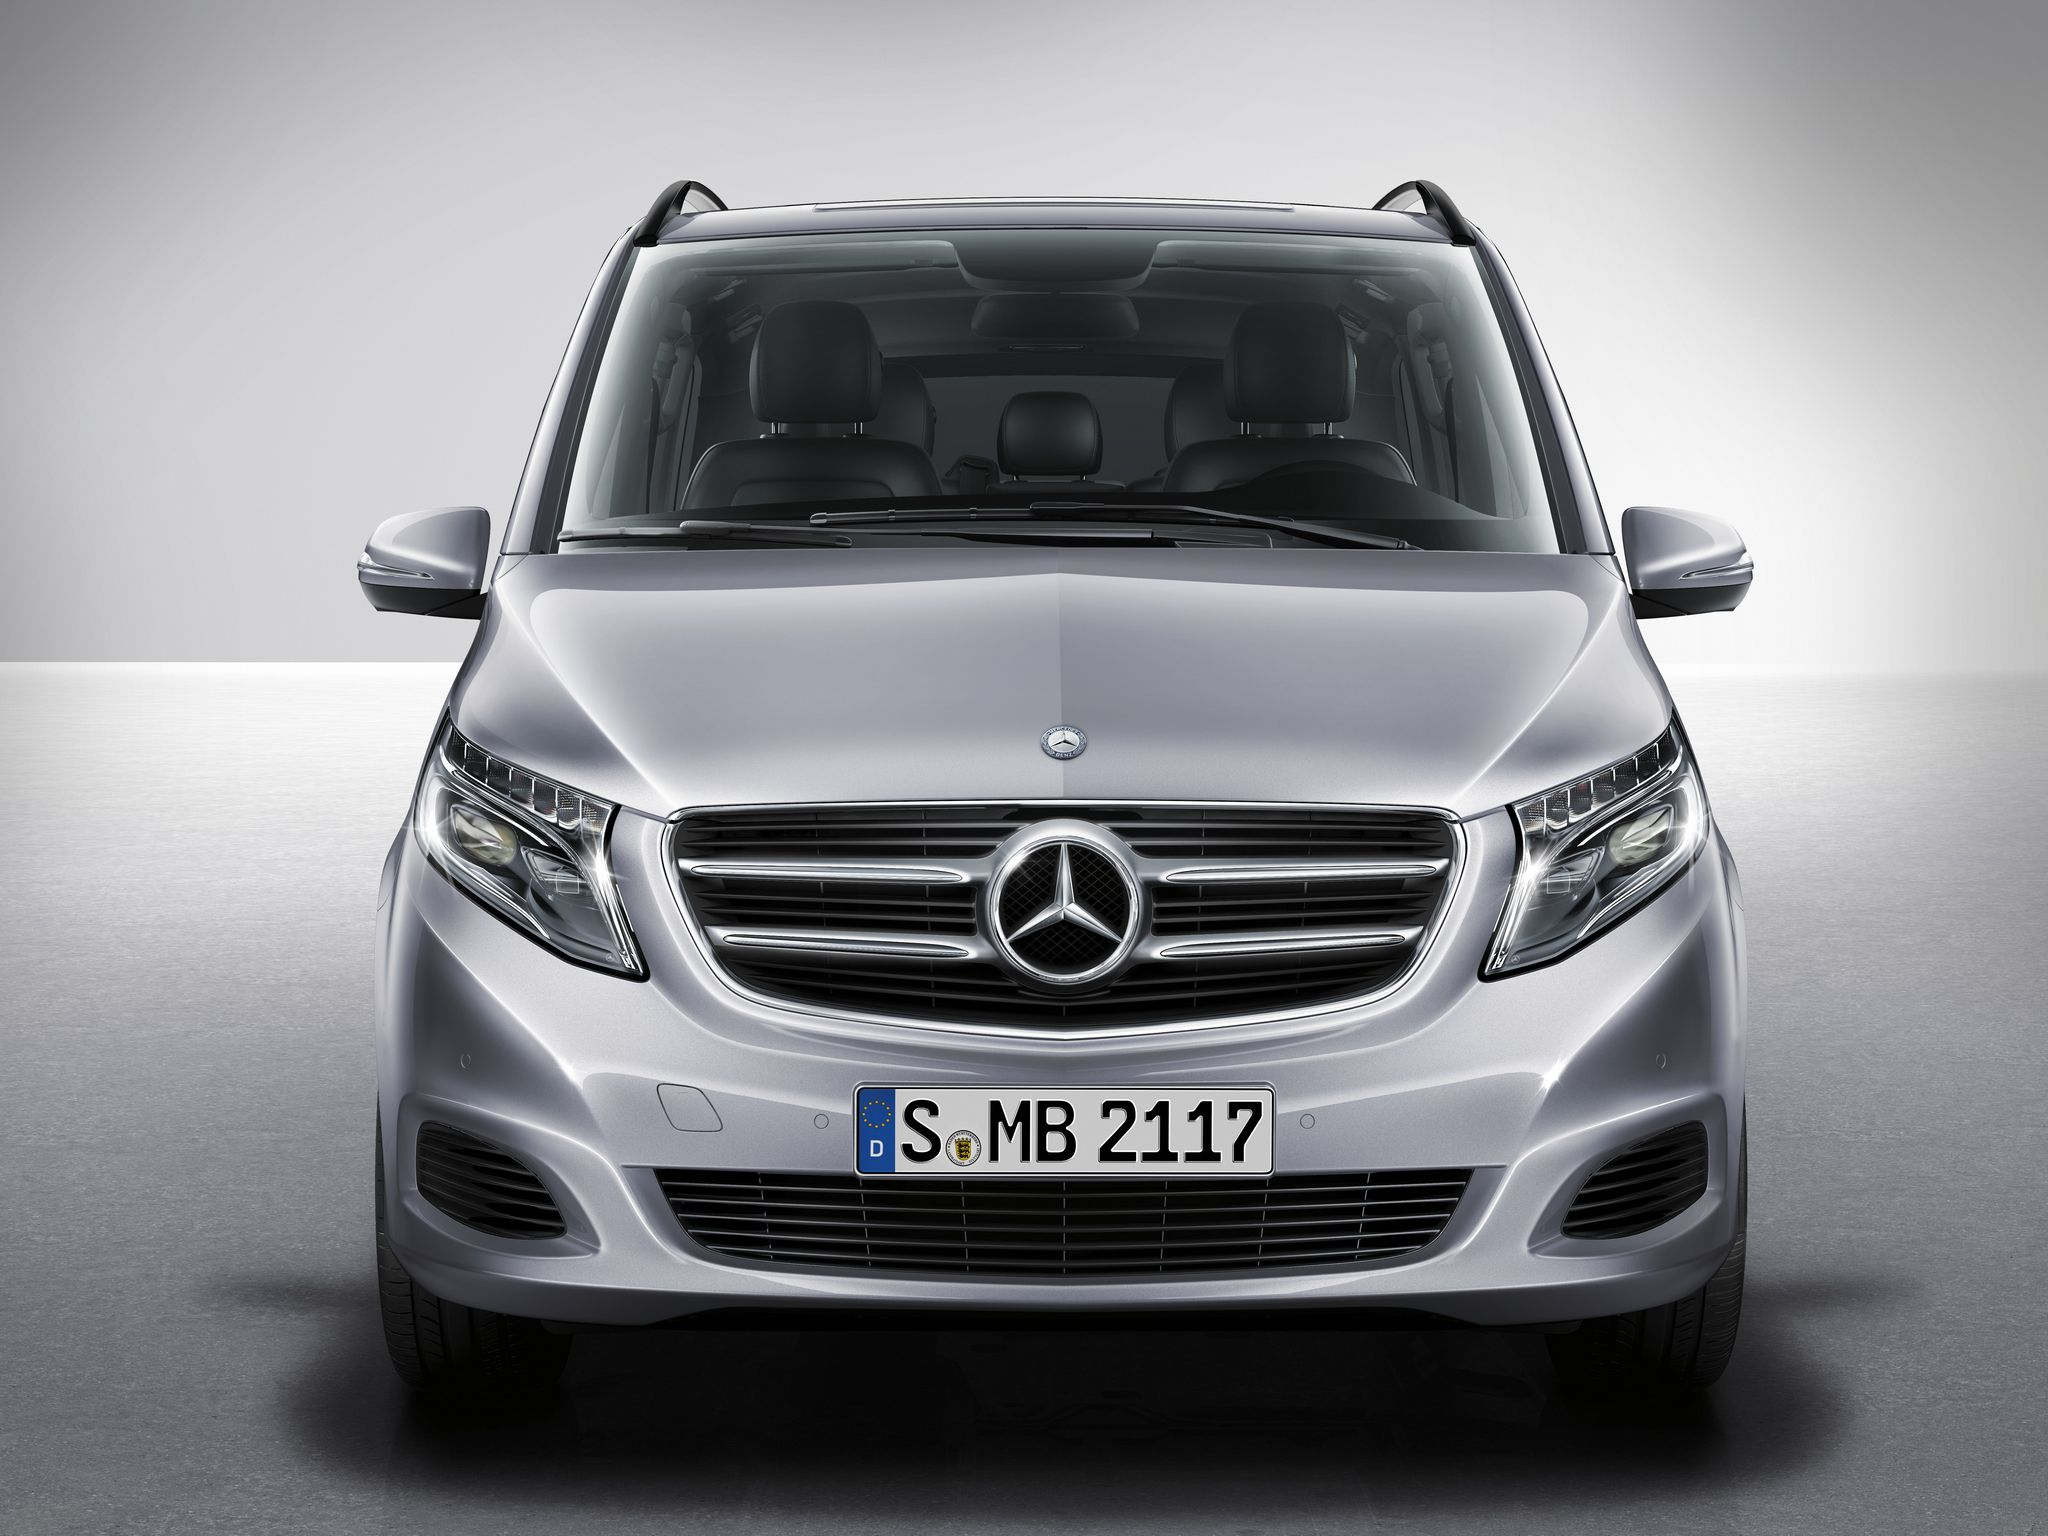 2015 Mercedes V Class 1 2015 Mercedes V Class Comes with Sports Package Option